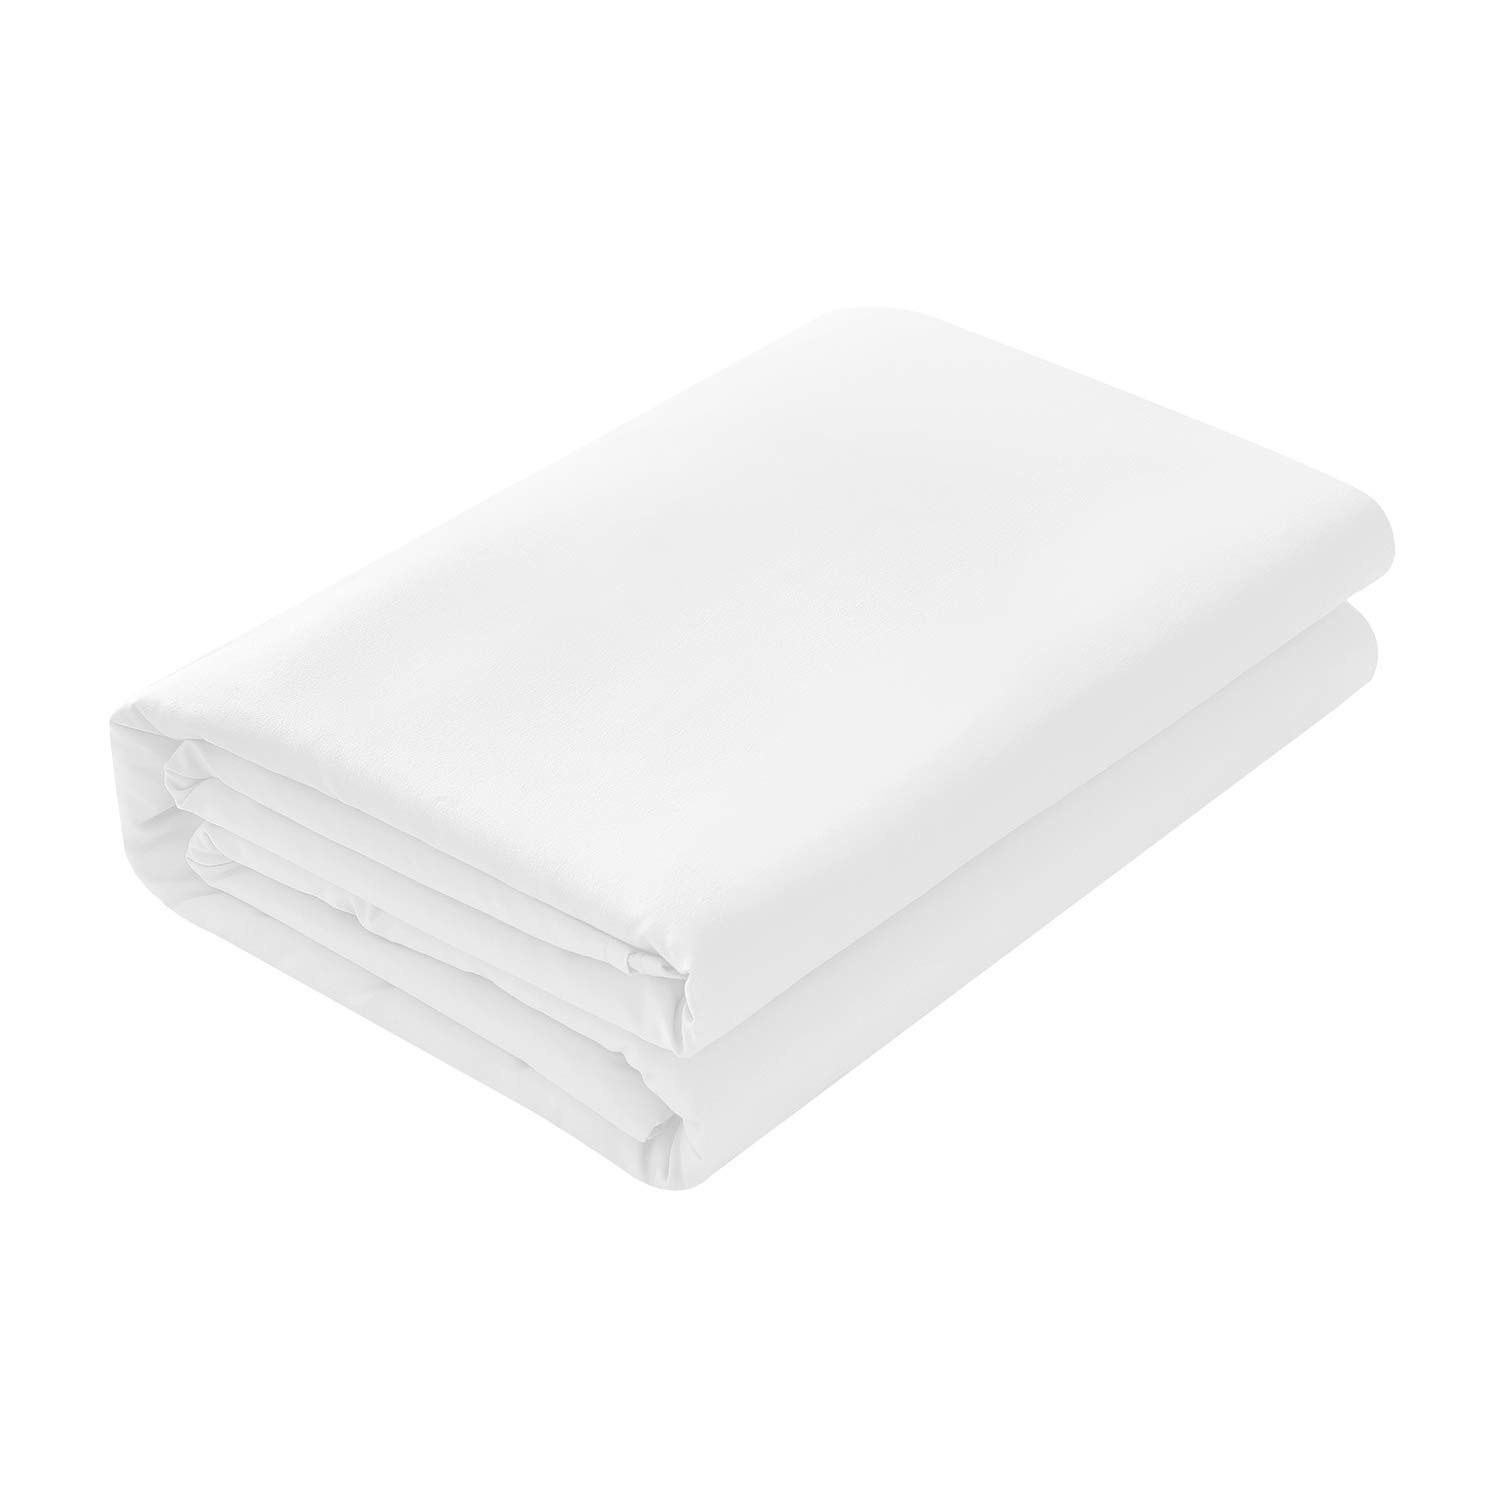 Hotel Luxury { 1500-TC } 1-Piece Flat (Top) Sheet Authentic Heavy Soft Egyptian Cotton Flat Sheet Available in Many Attractive Color's, King Size, White Color { Style : Solid }